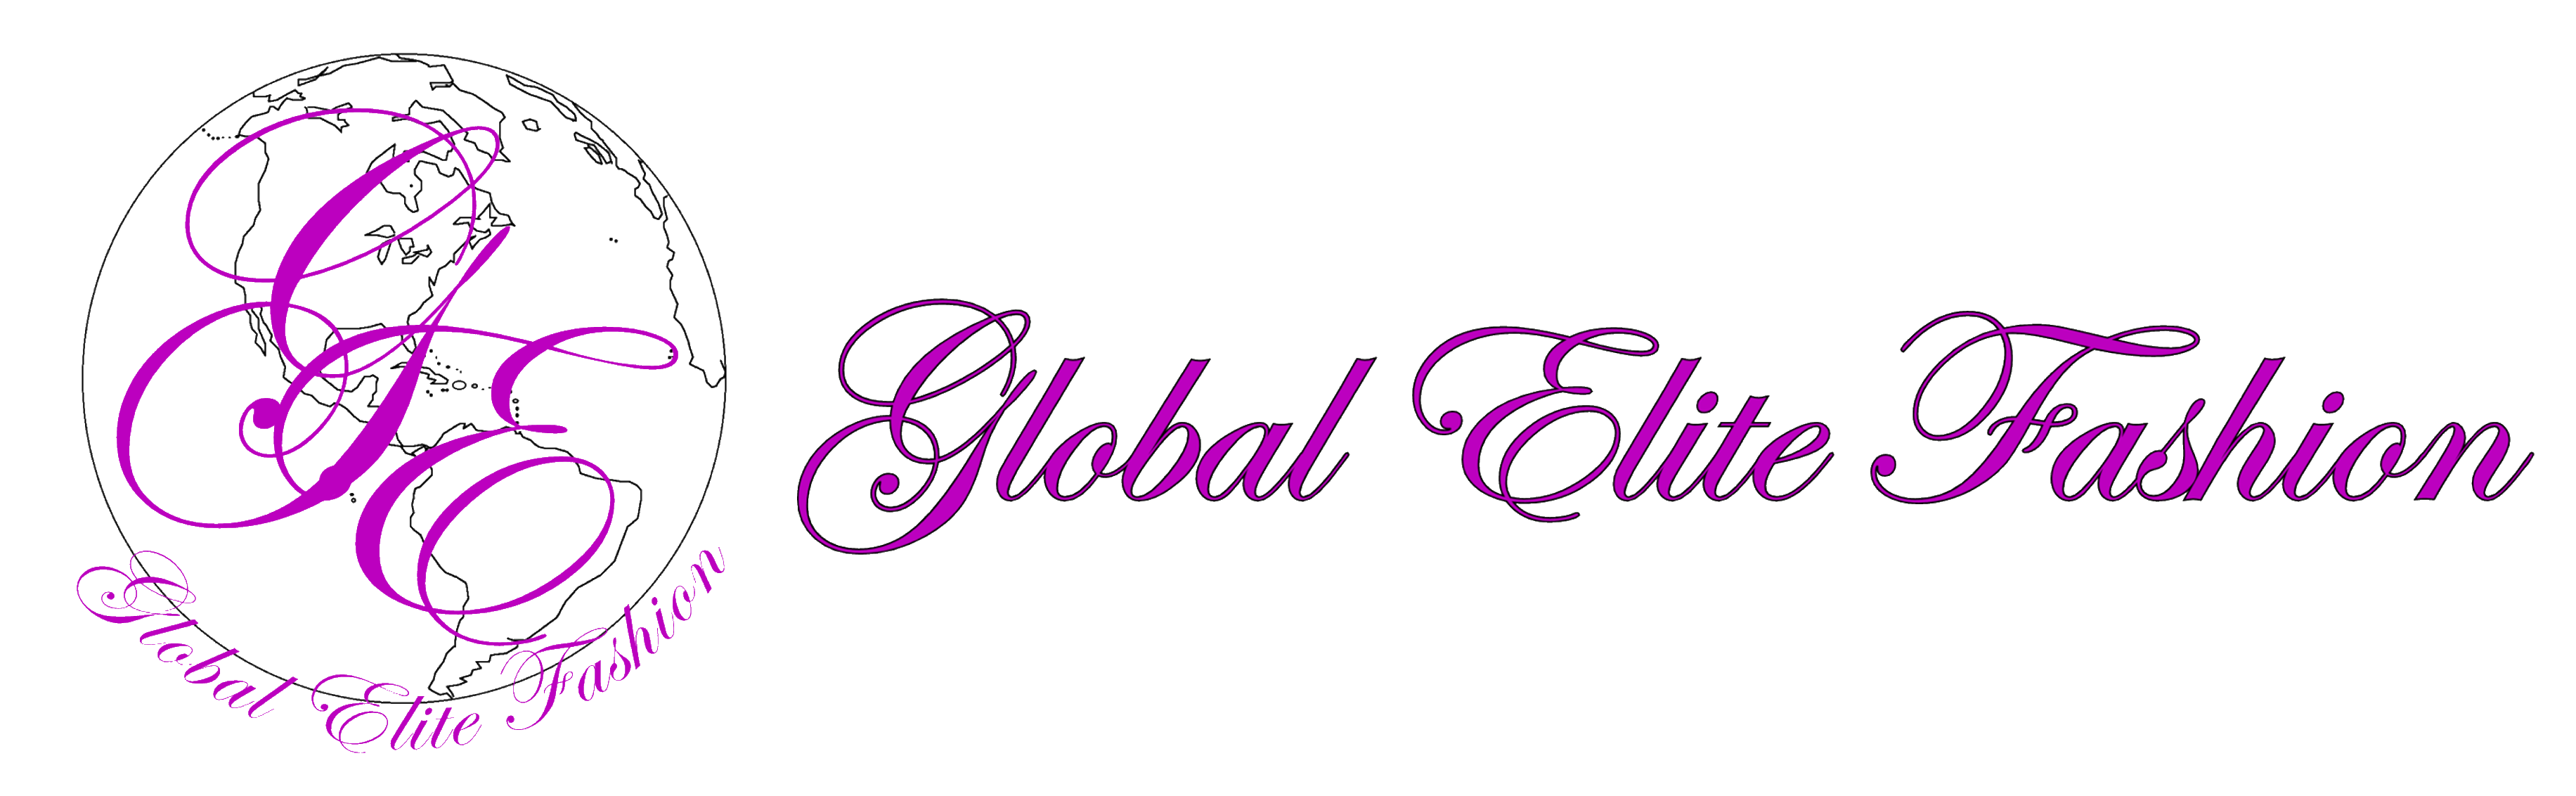 Global Elite Fashion